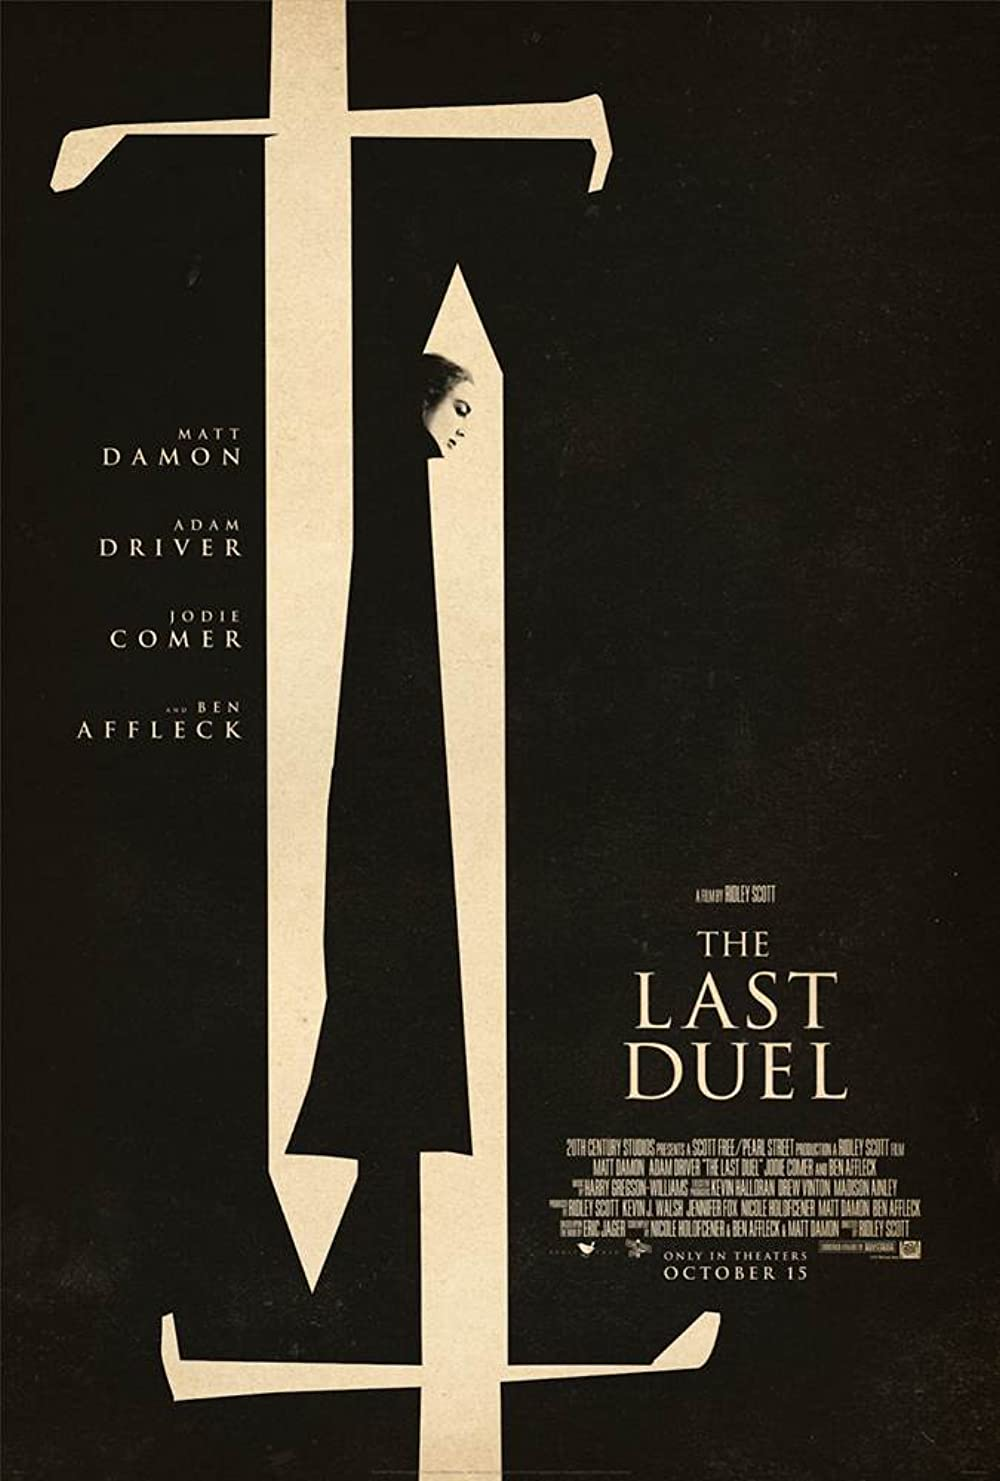 The Last Duel Trailer & Poster